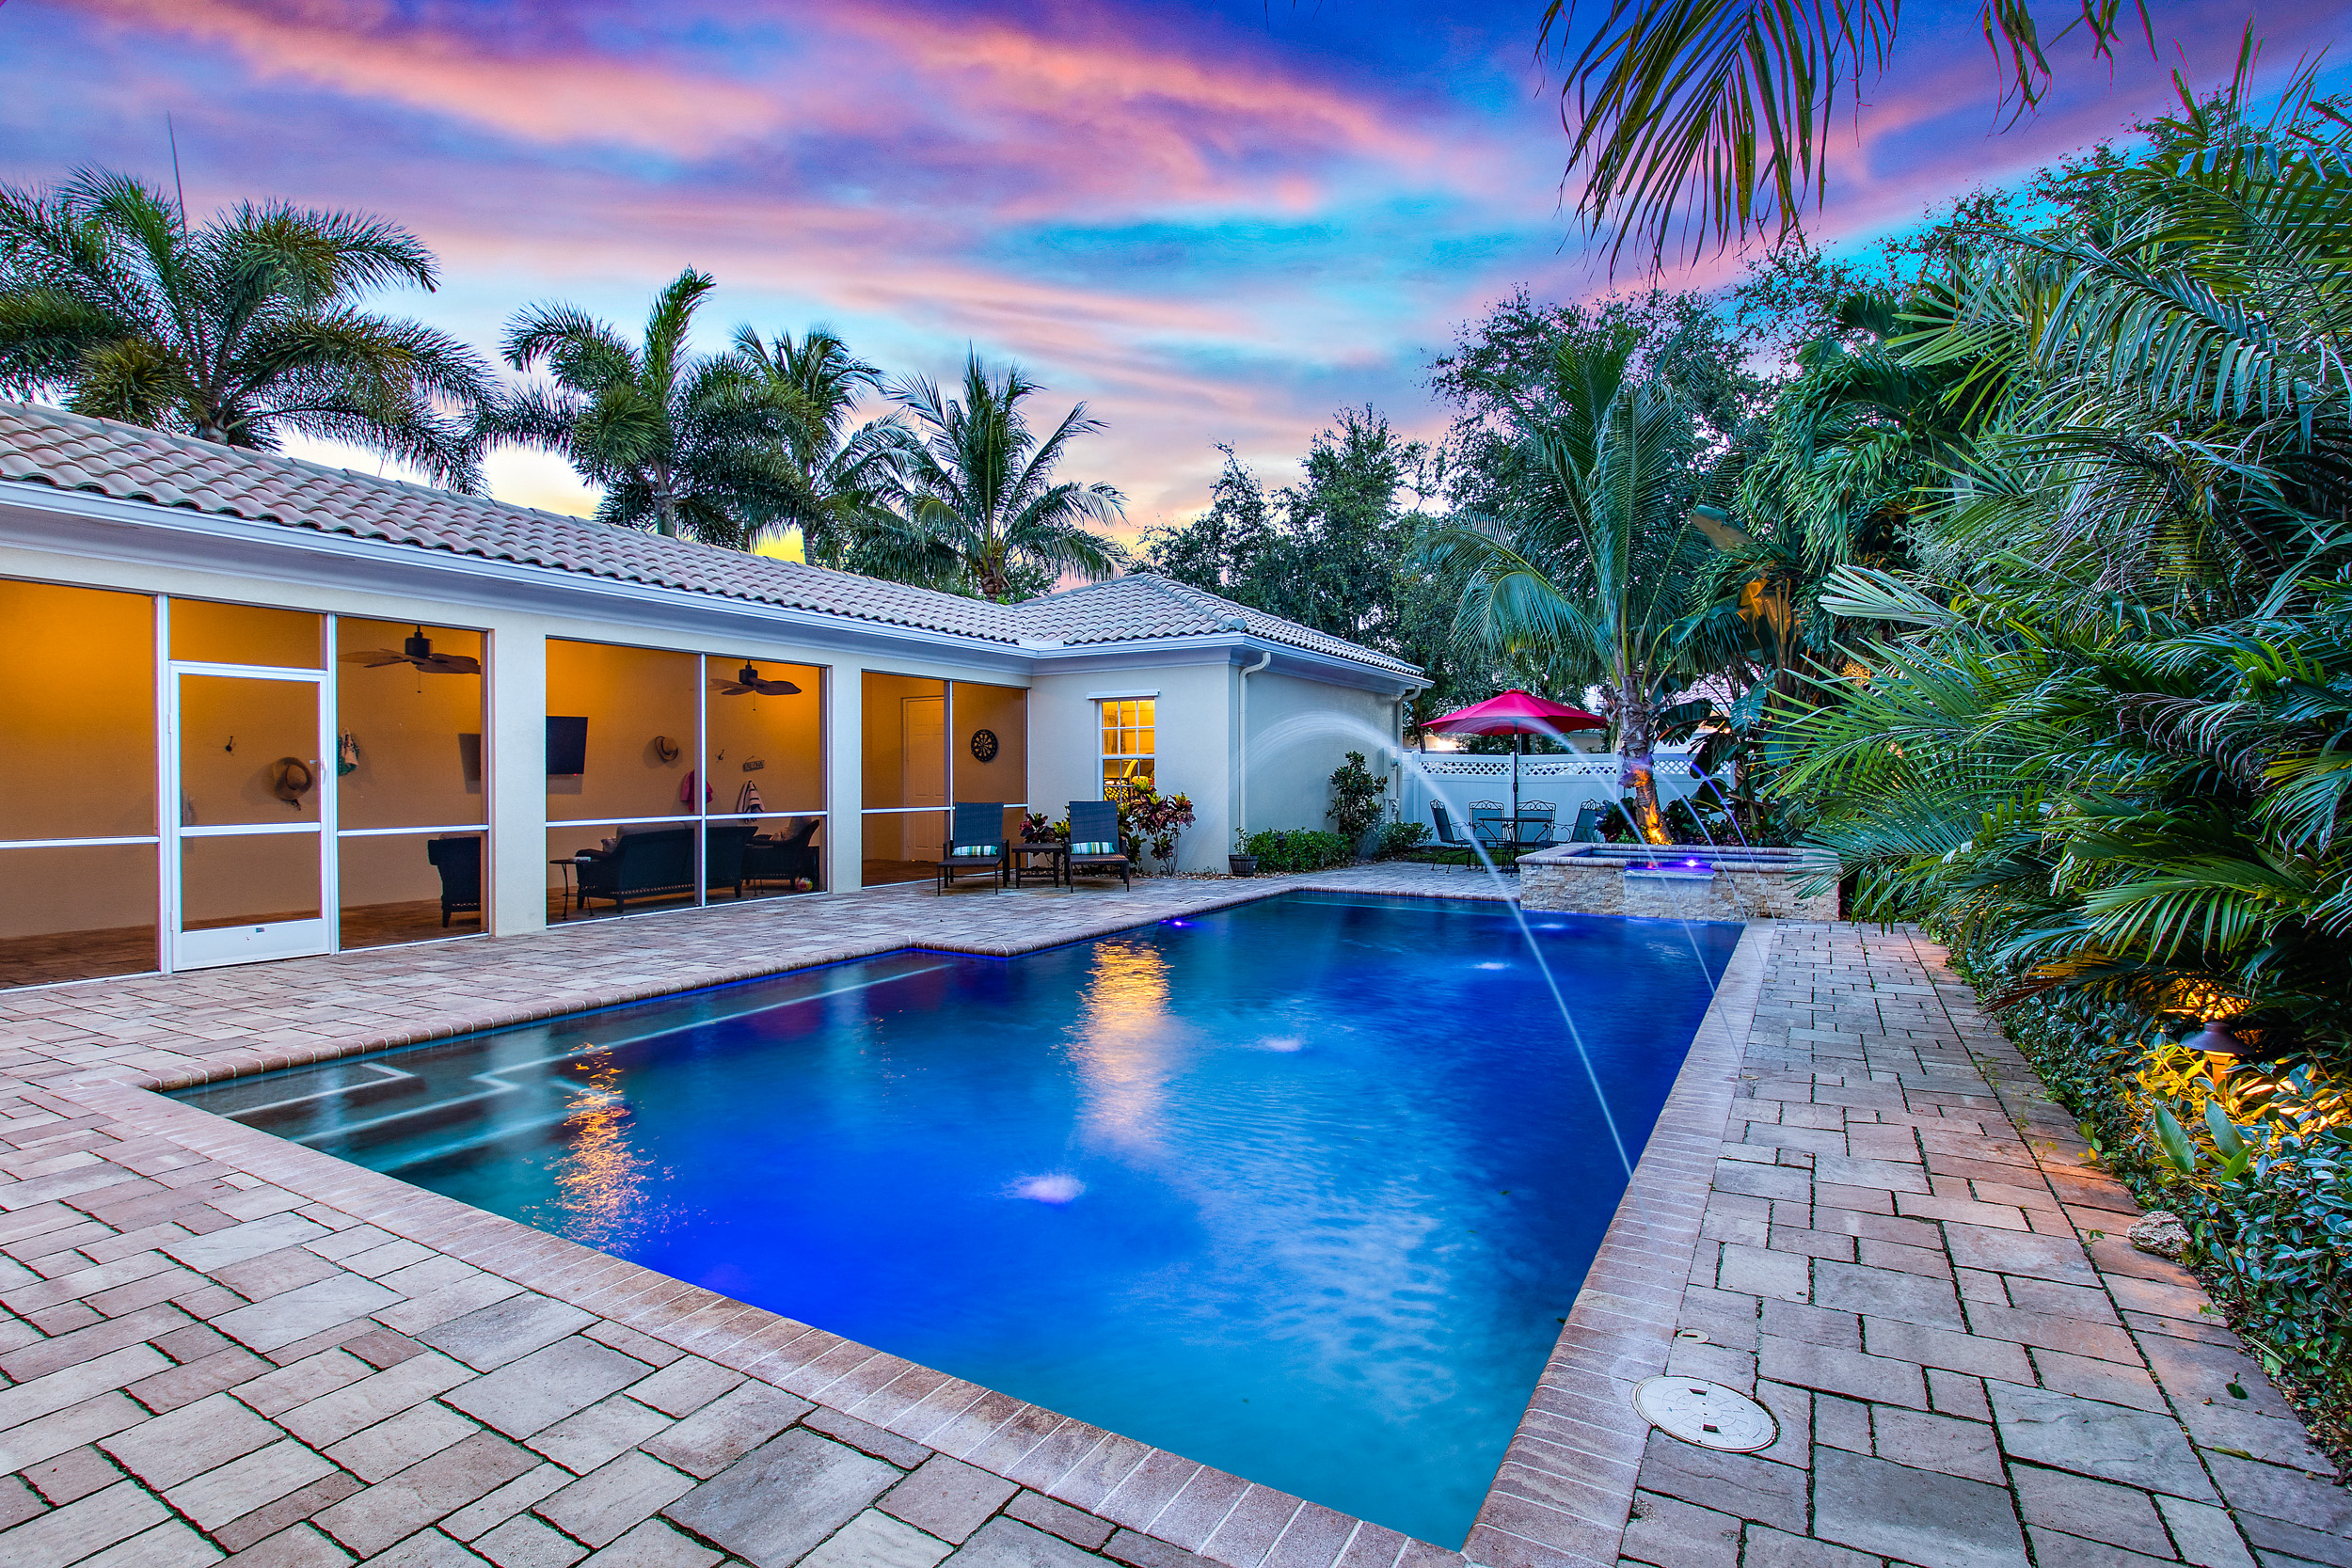 Search Abacoa, Jupiter Homes For Sale - See all townhomes, condos, and single family homes for sale in Abacoa neighborhoods in Jupiter, Florida.